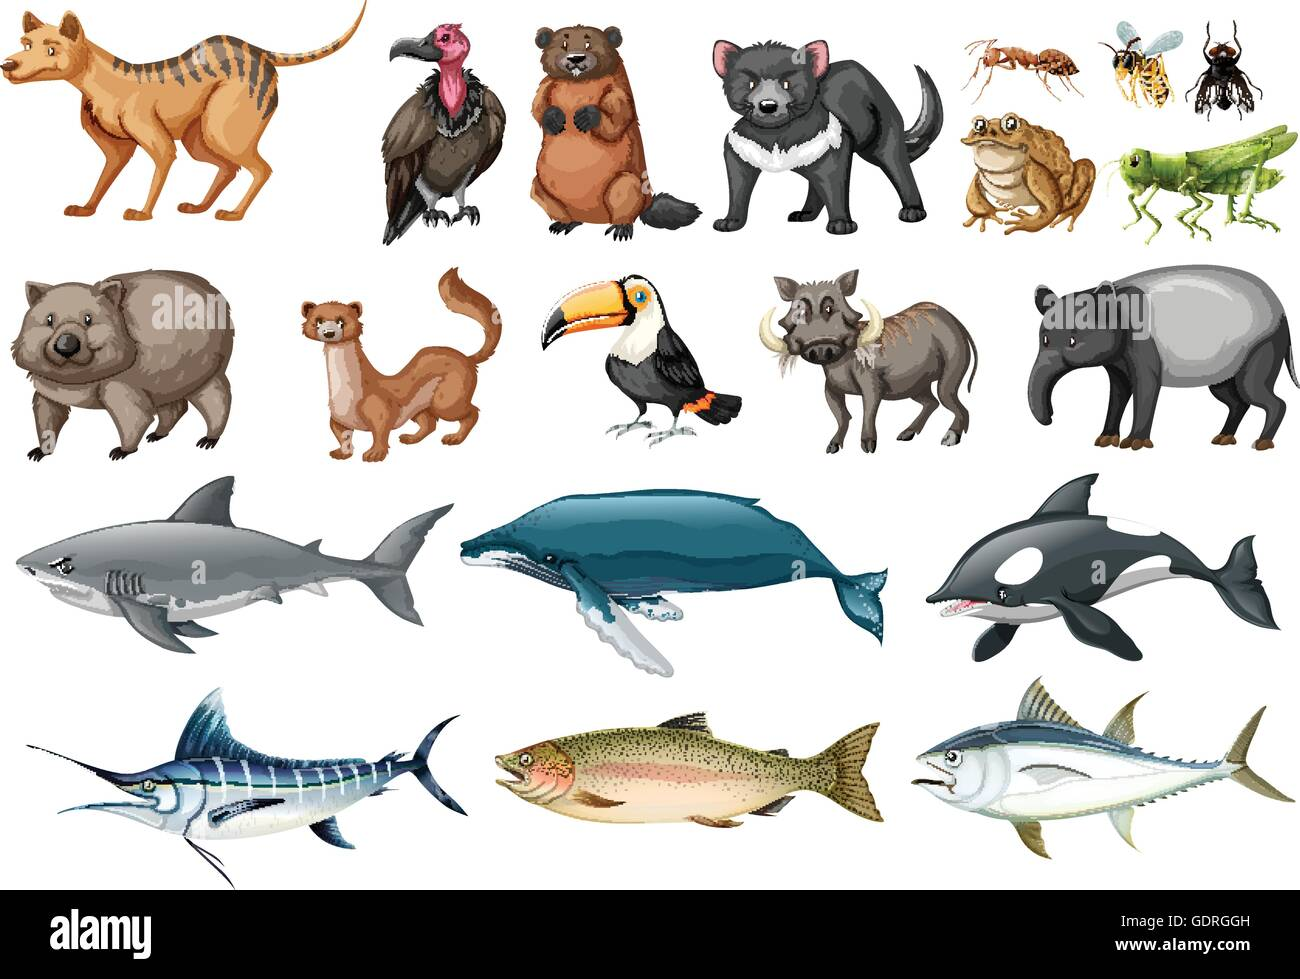 Set Of Different Types Of Wild Animals Illustration Stock